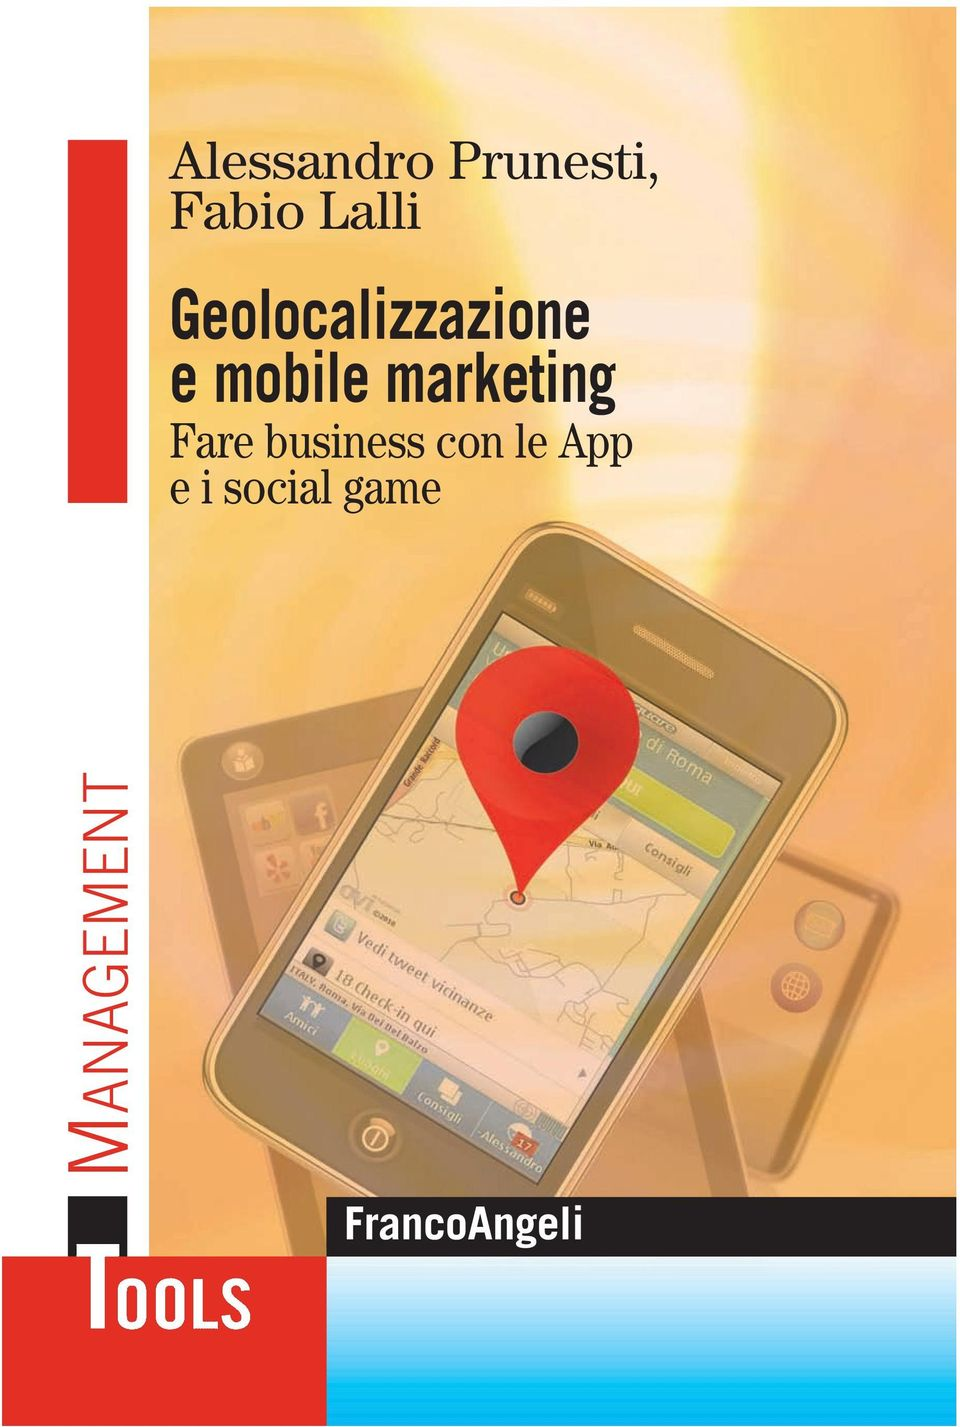 marketing Fare business con le